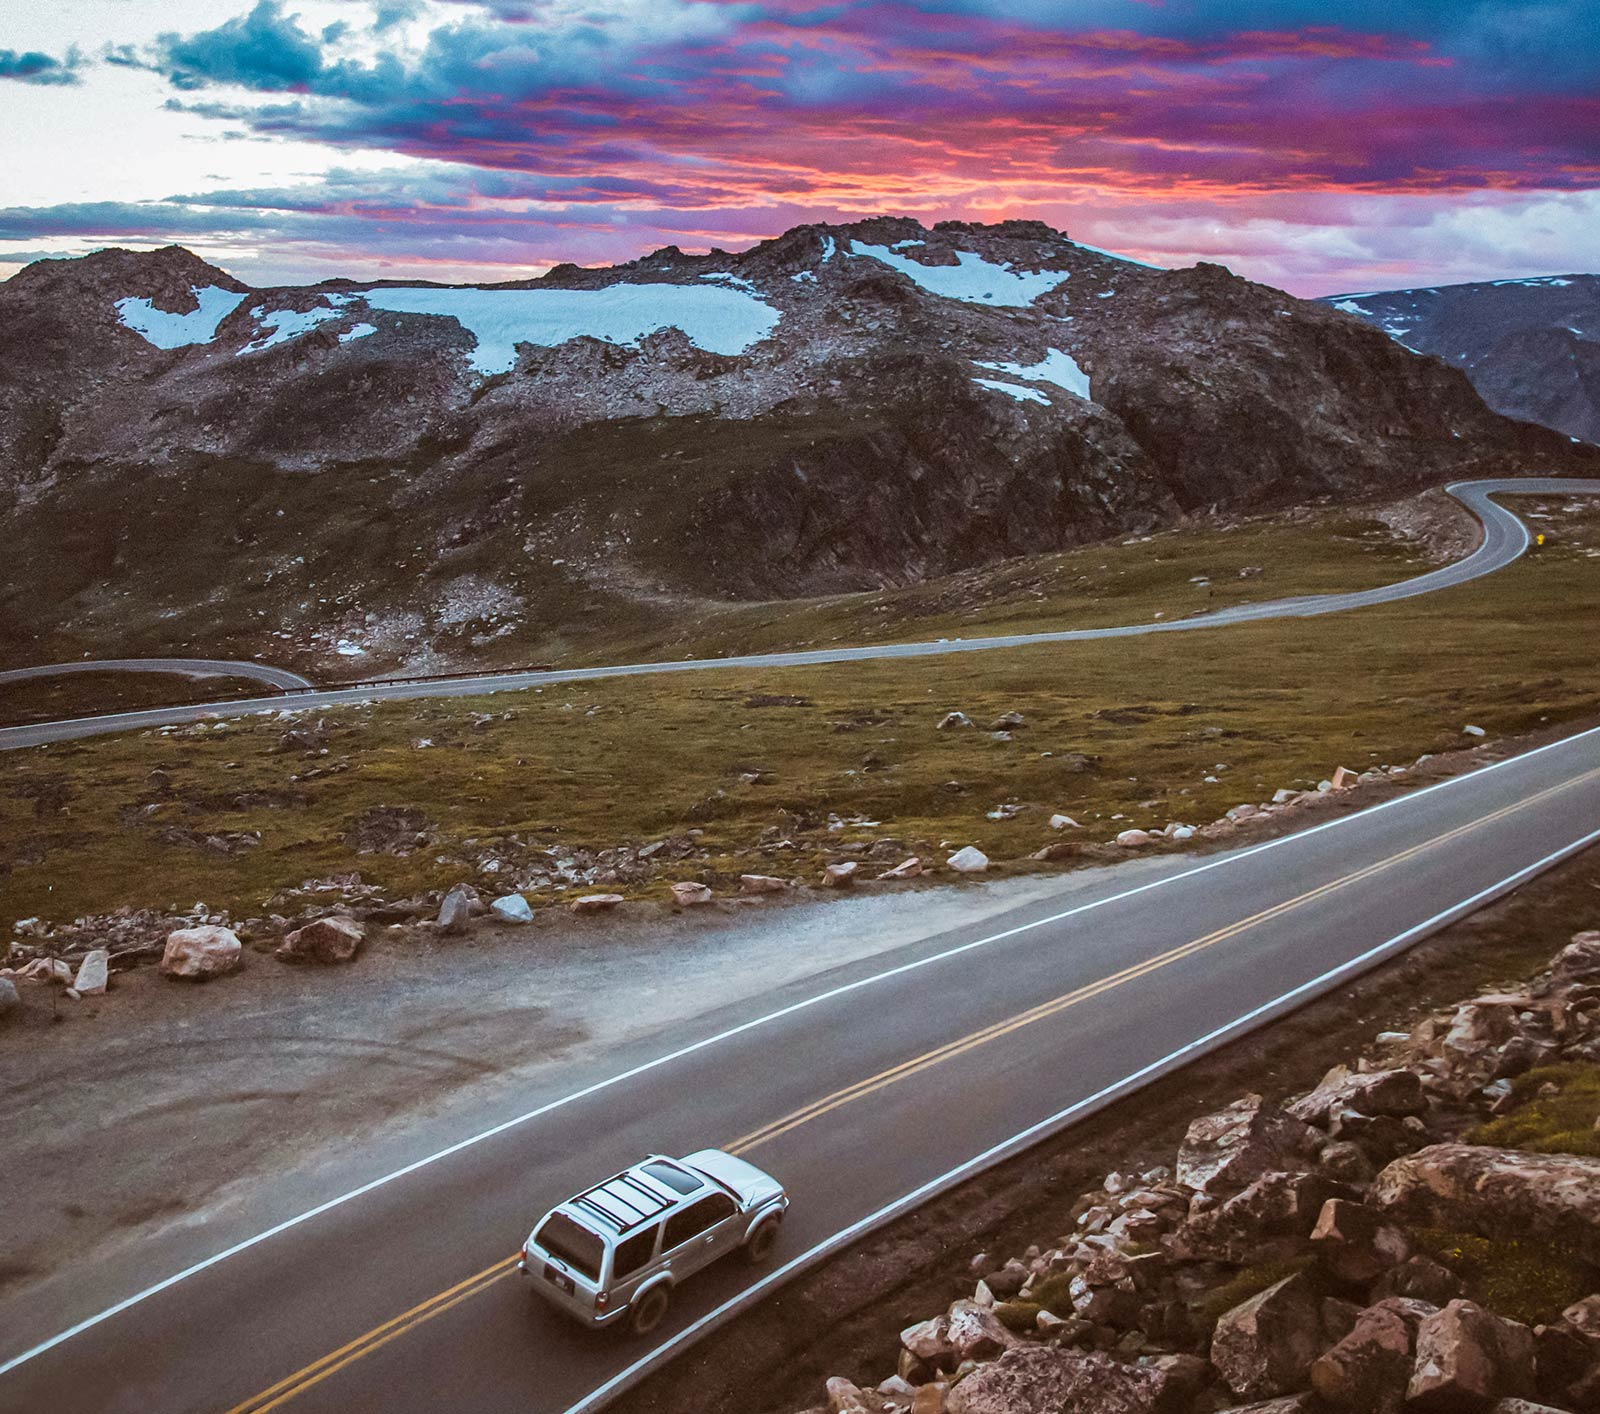 wp-content/uploads/itineraries/USA/WyMt/Bear-Tooth-Highway-1.jpg